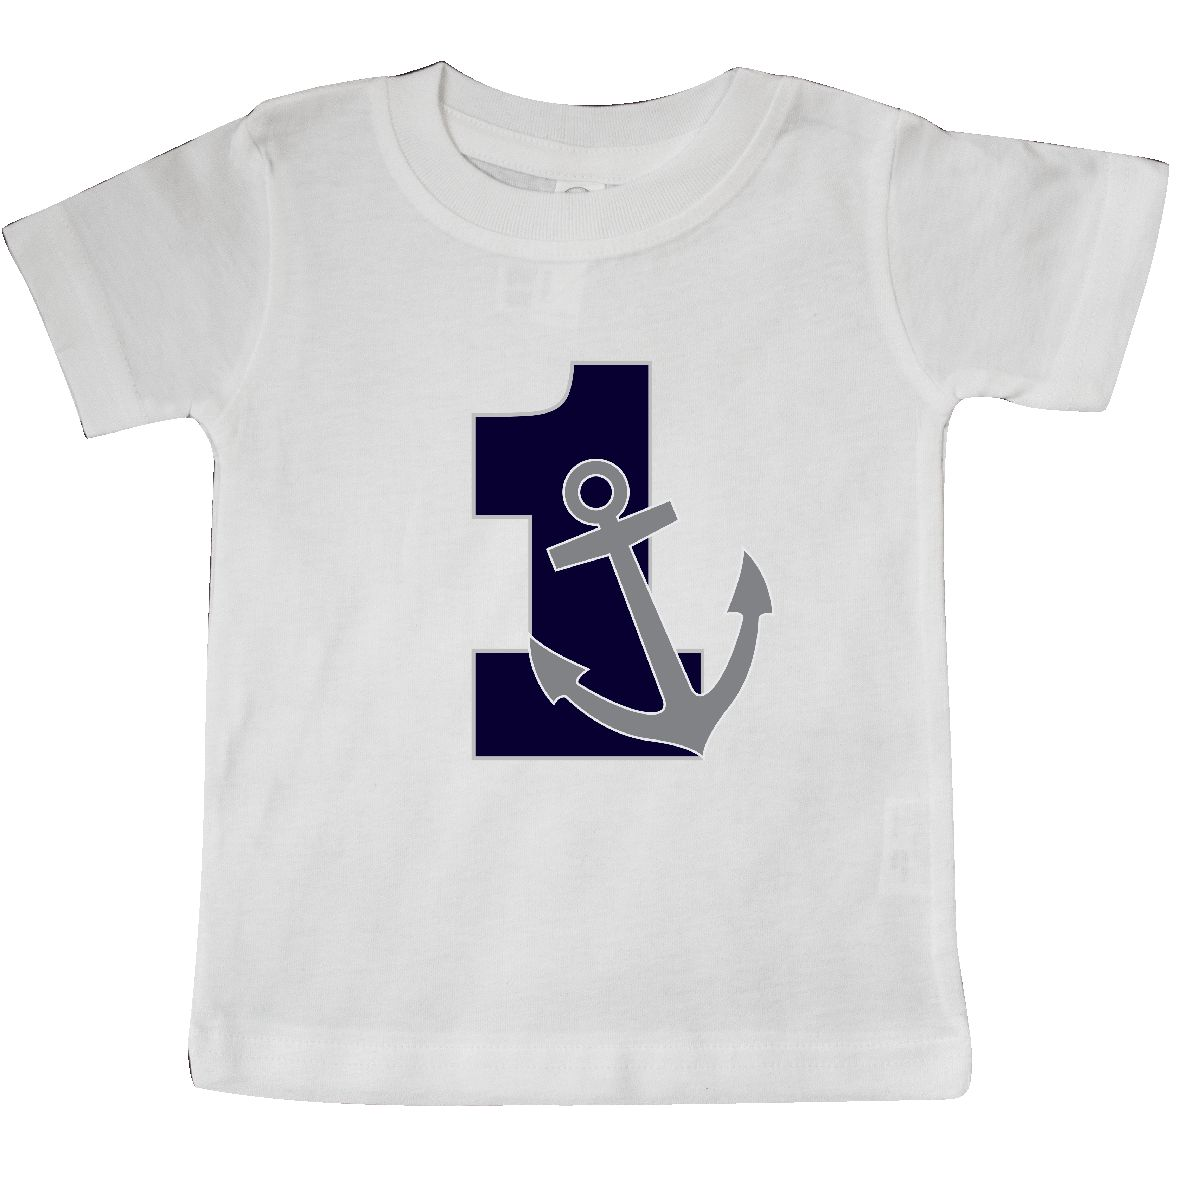 First Birthday Nautical Anchor 1 Year Old Baby T Shirt White 6 Months